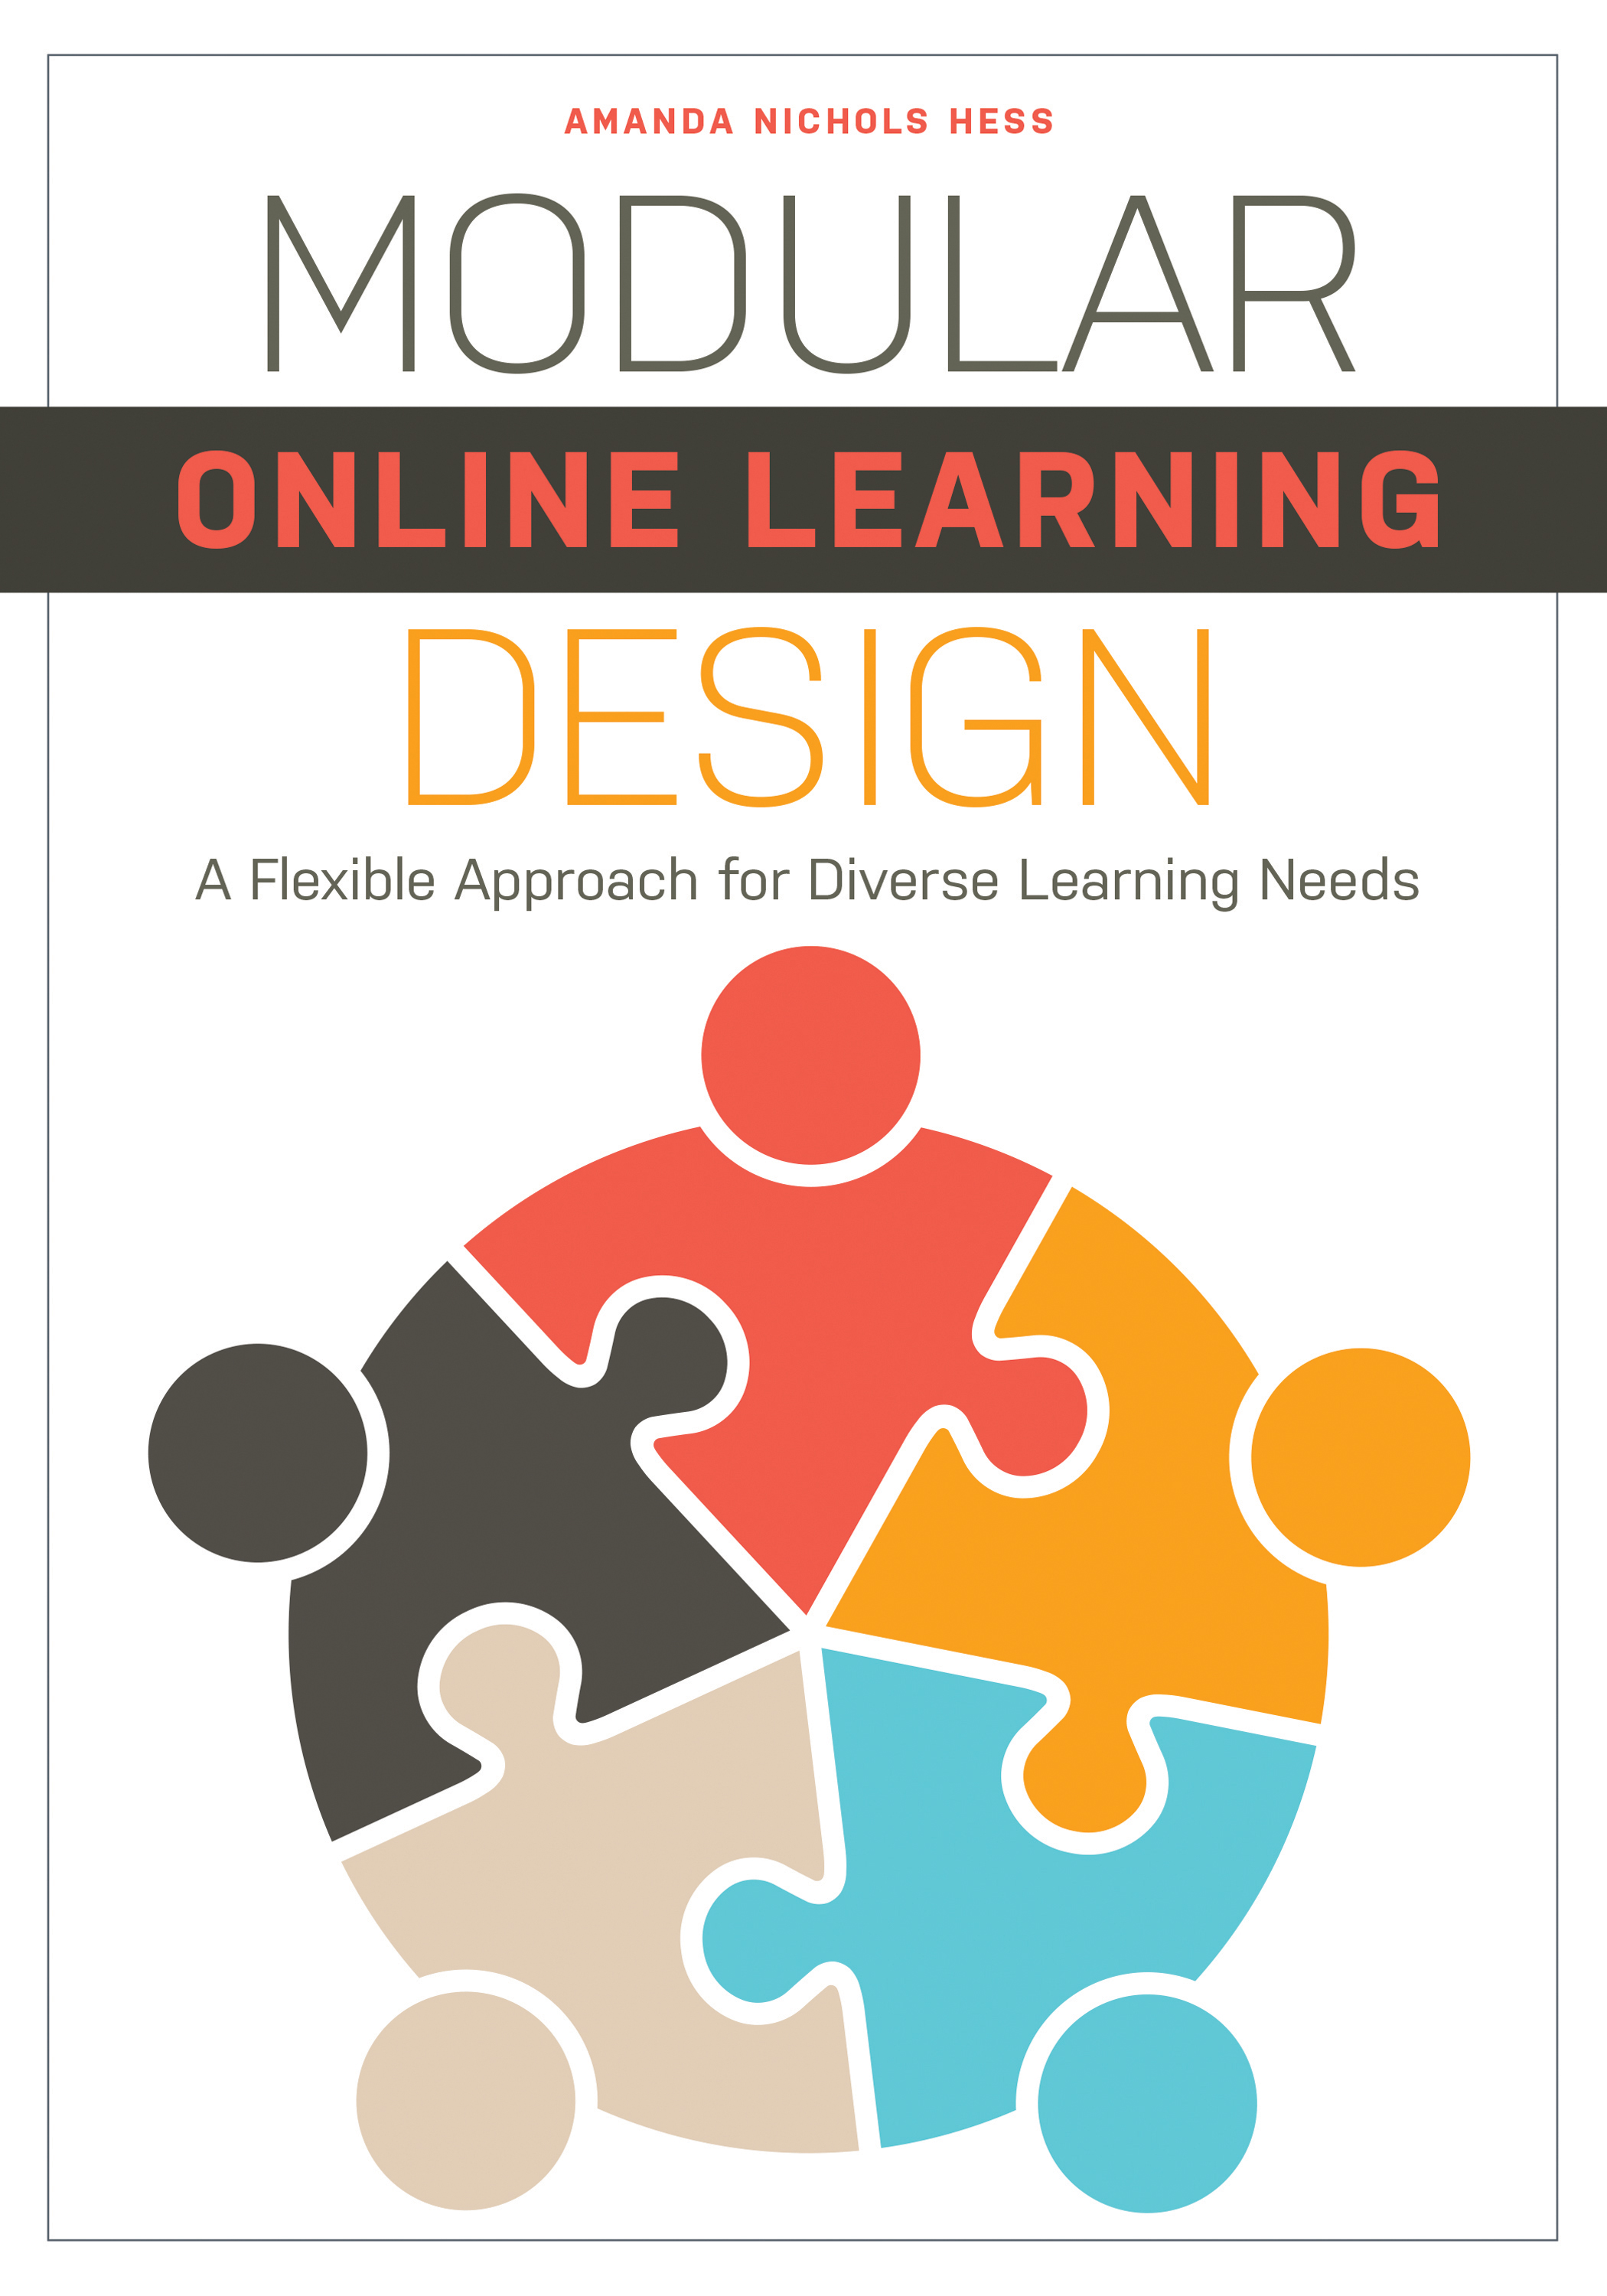 Image for Modular Online Learning Design: A Flexible Approach for Diverse Learning Needs